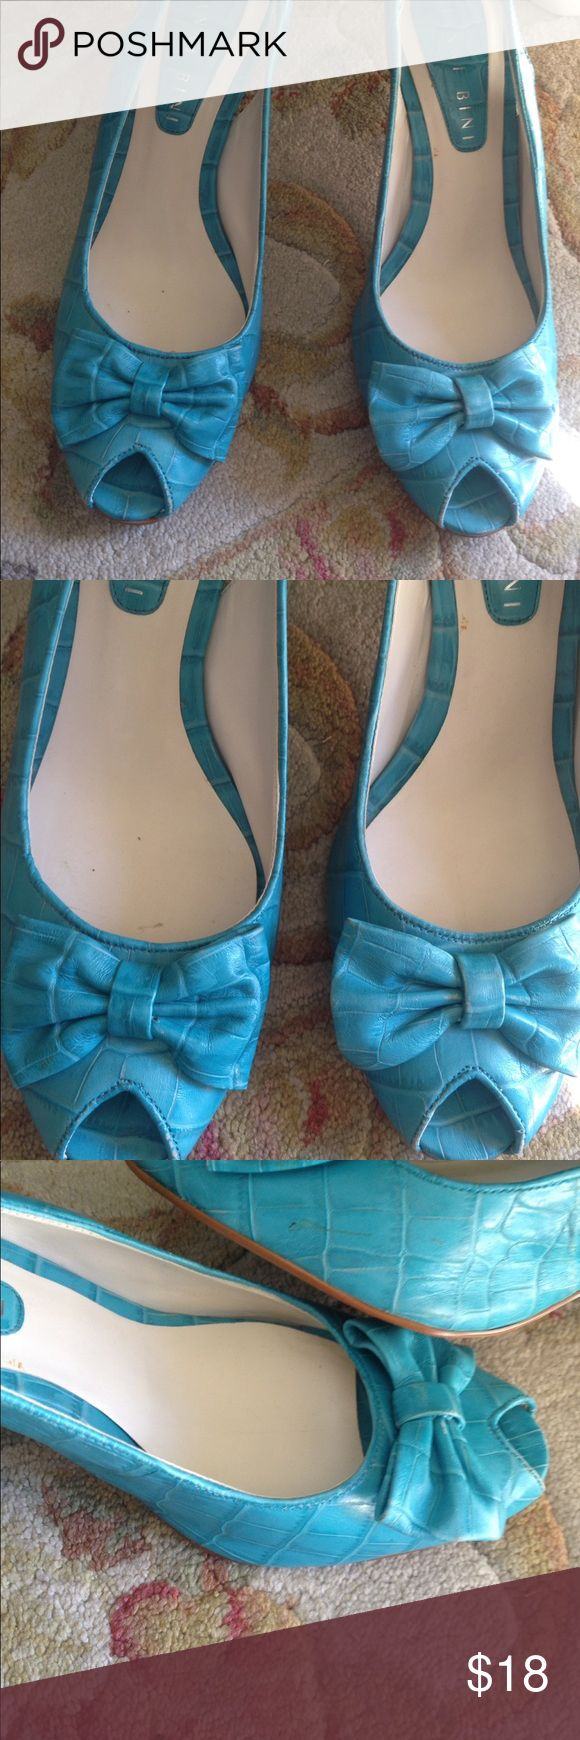 GIANNI BINI Turquoise Slingback Sandals Excellent condition minor signs of wear Heel Height 3 inches Gianni Bini Shoes Sandals